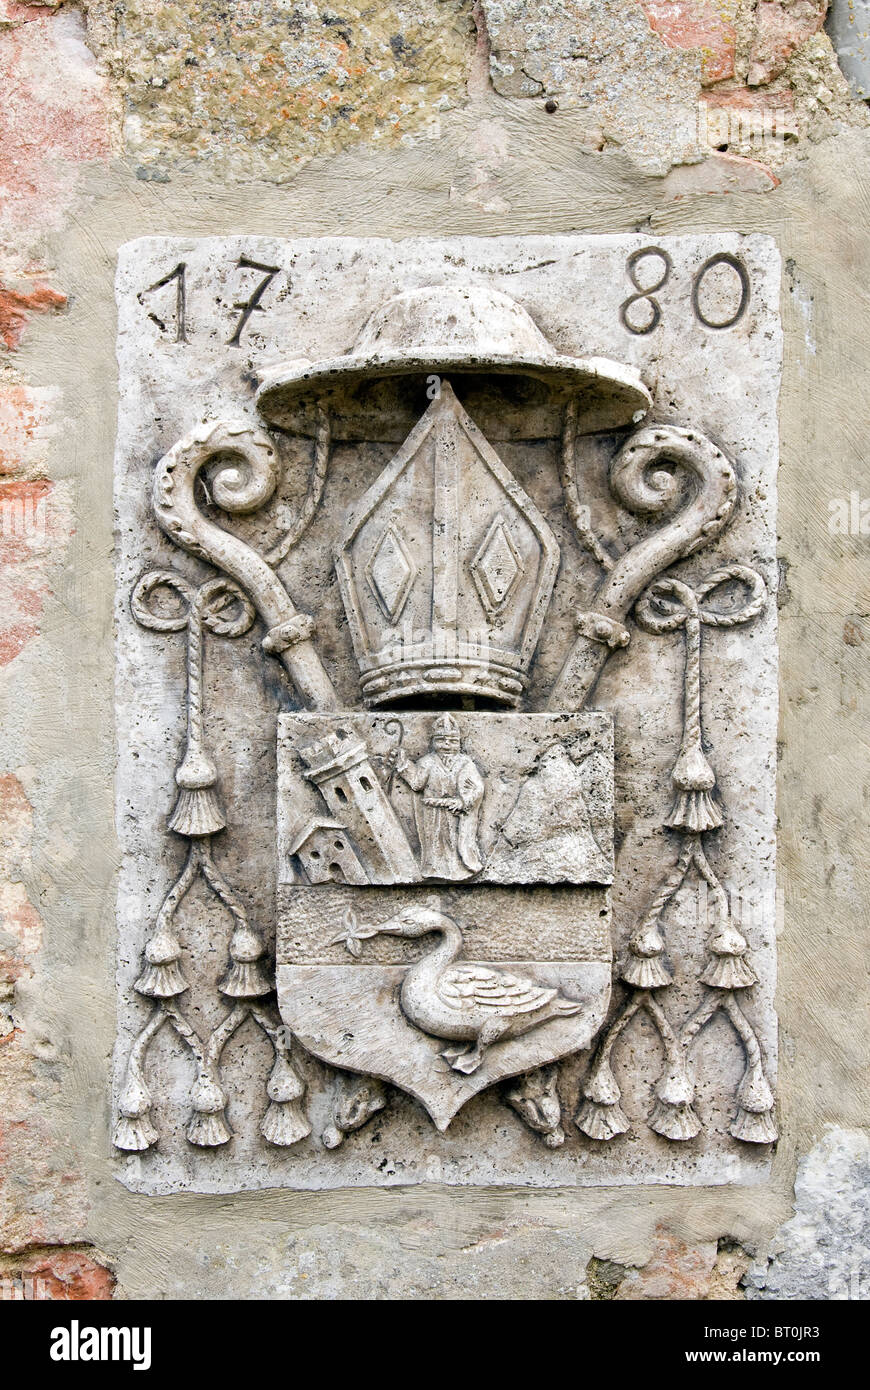 Papal sign in the wall of Canonica a Cerreto - Stock Image